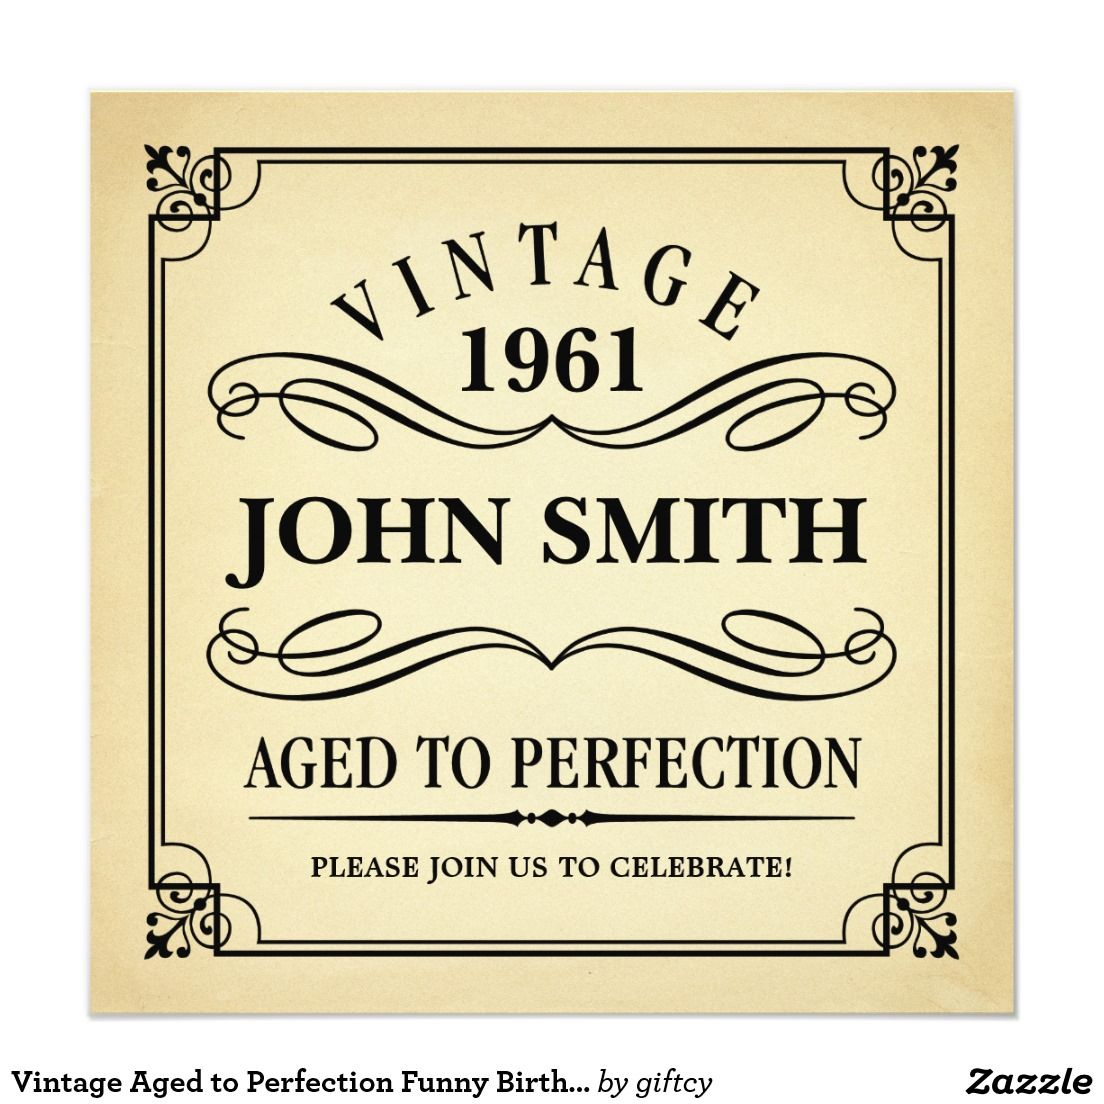 Vintage Aged to Perfection Funny Birthday Invite Black text on ...